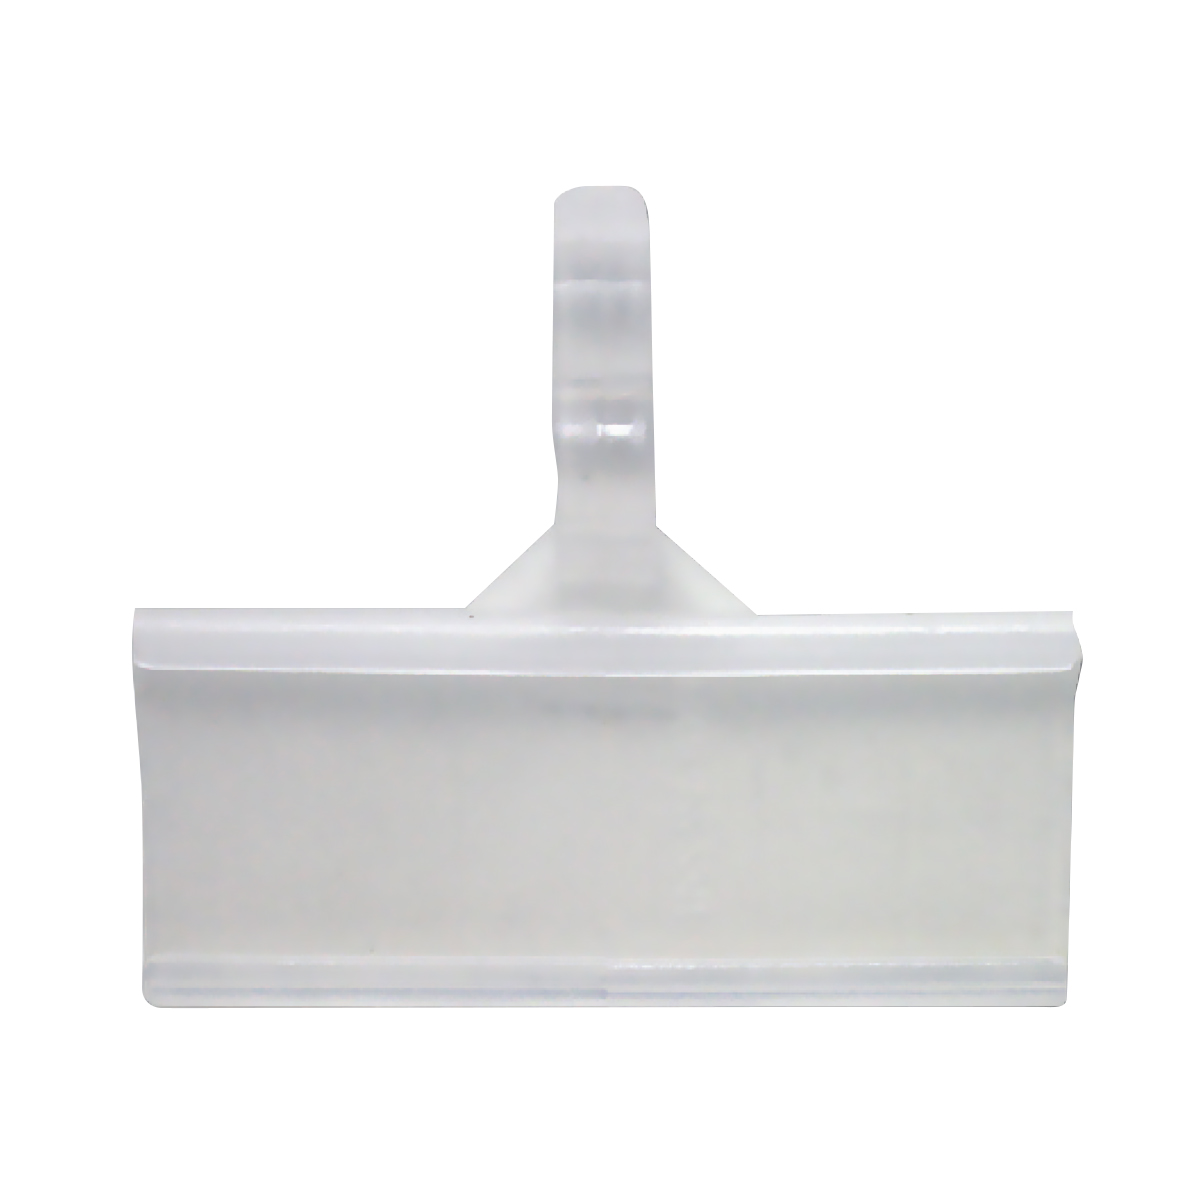 Clear plastic front window label holder designed for Metal Wire Basket